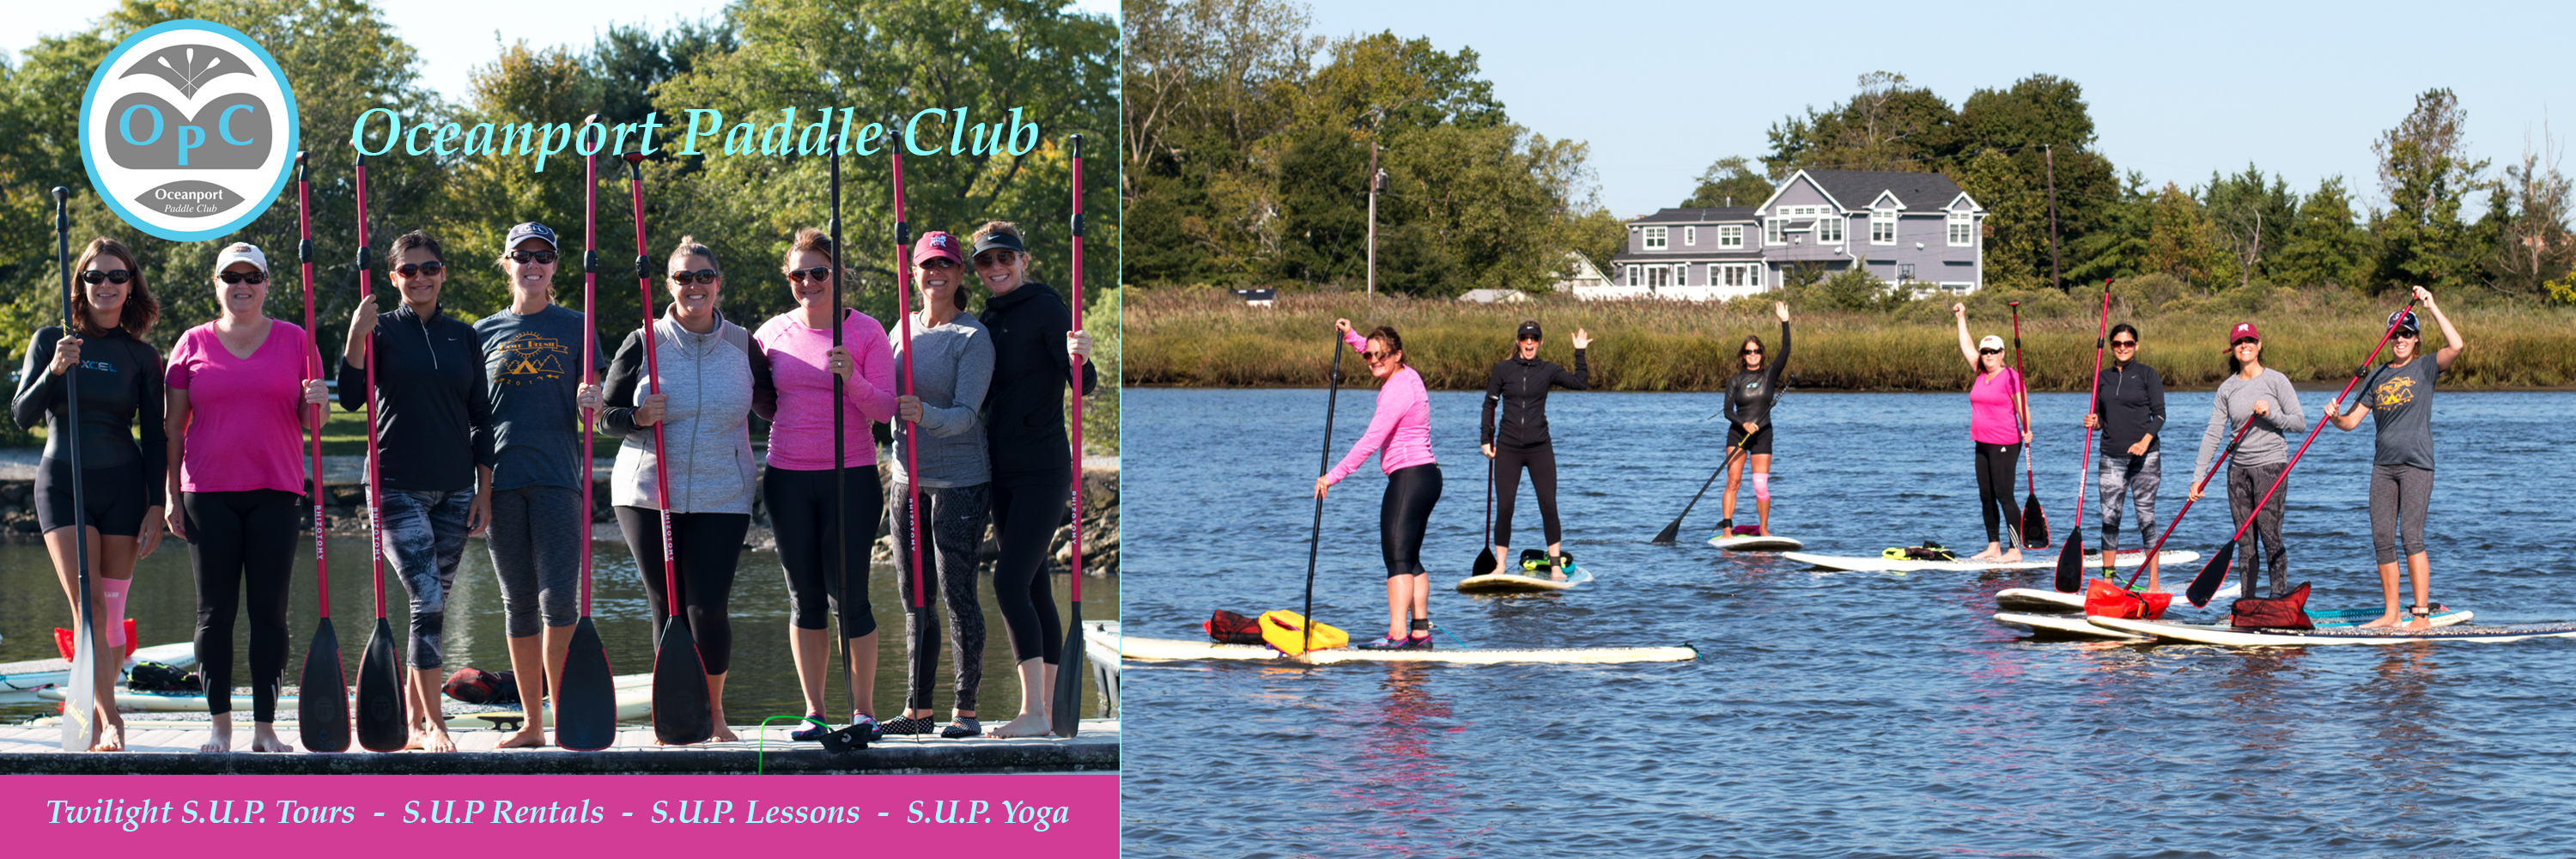 Stand Up Paddle Class, Rentals, Tours